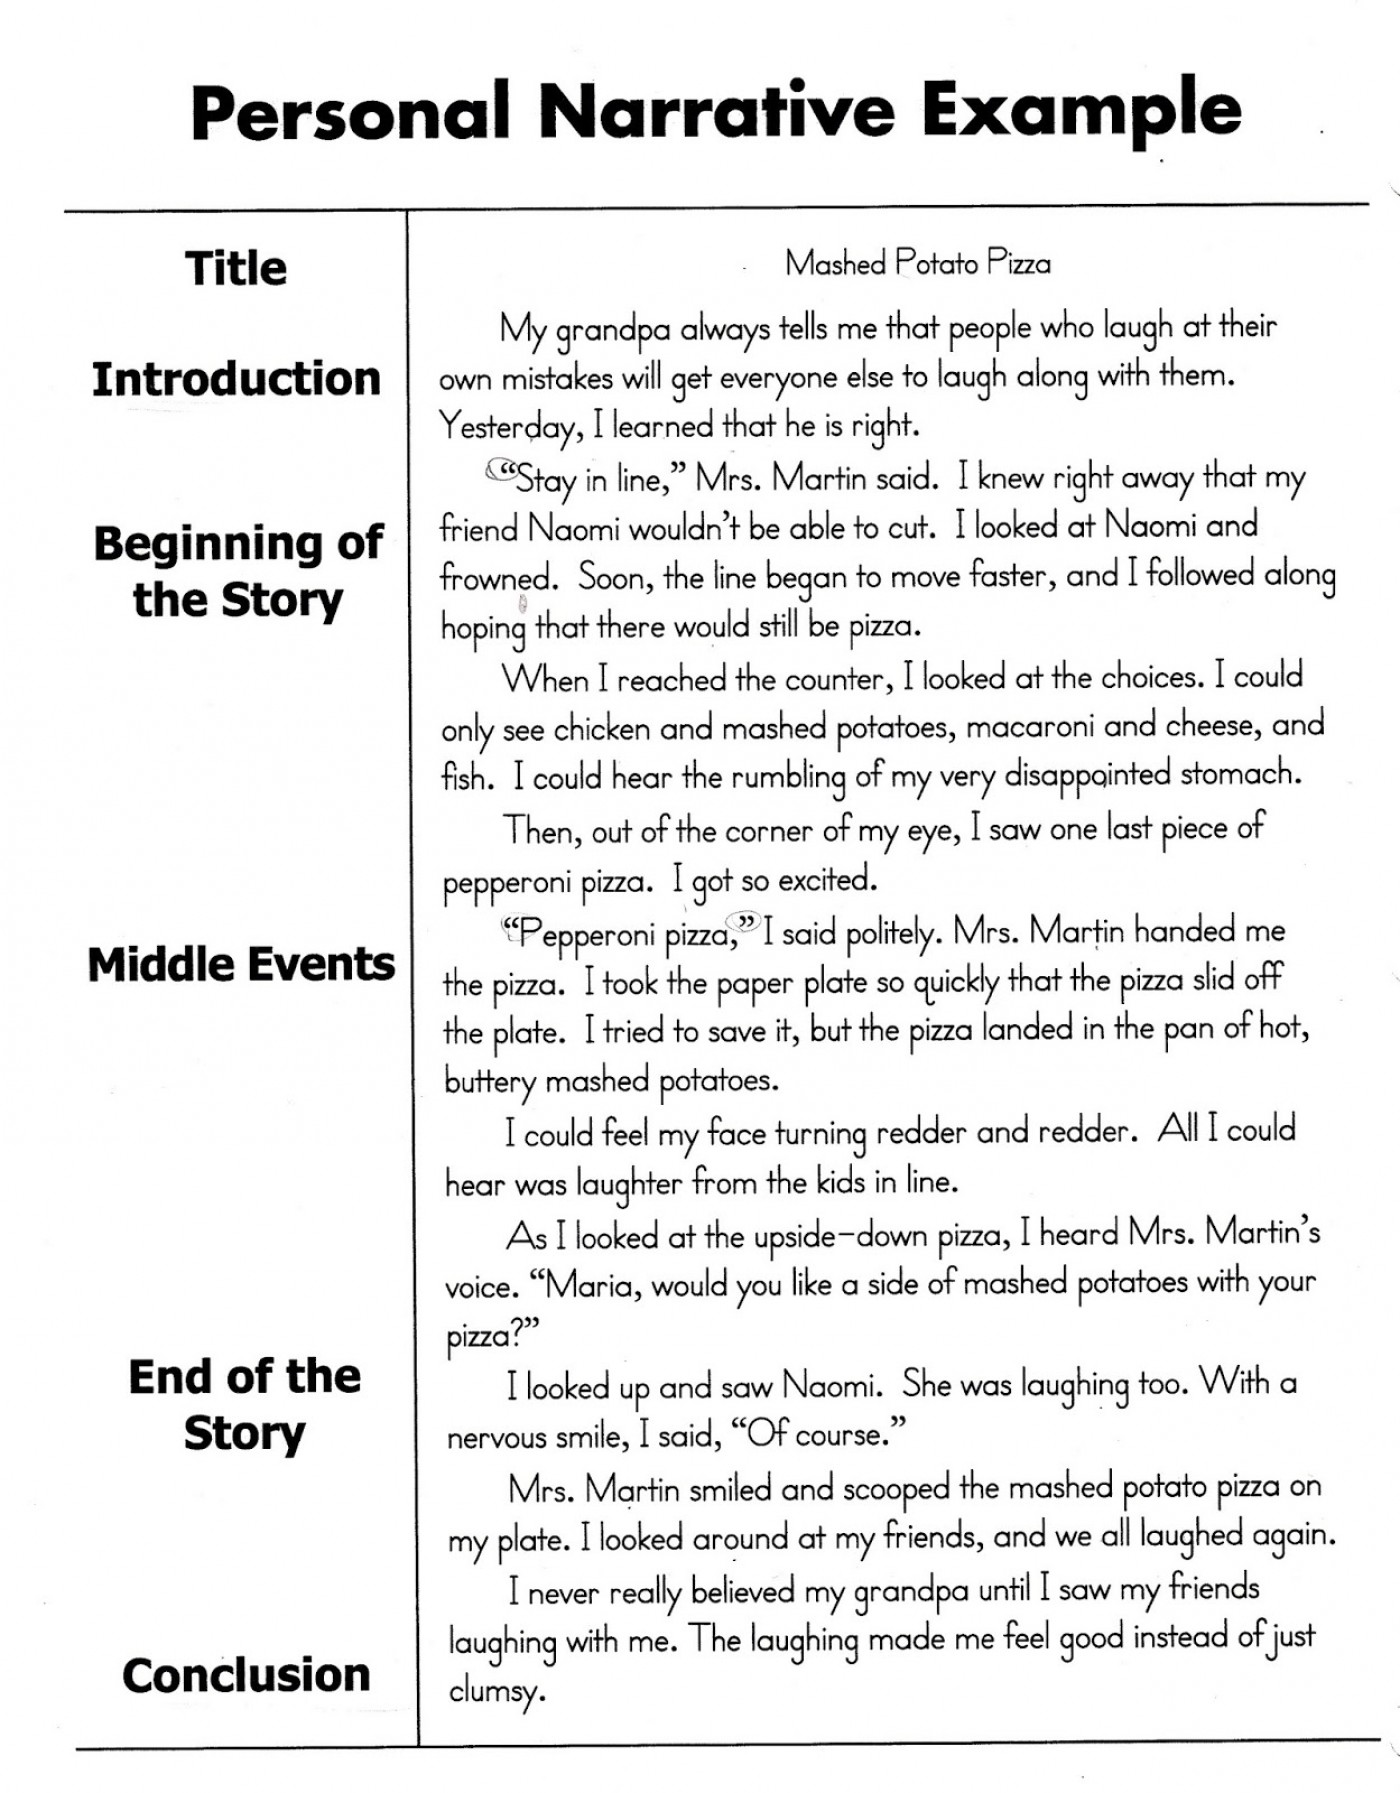 009 Personal20narrative Sample Narrative Essay Wondrous 5th Grade With Dialogue Pdf 1400